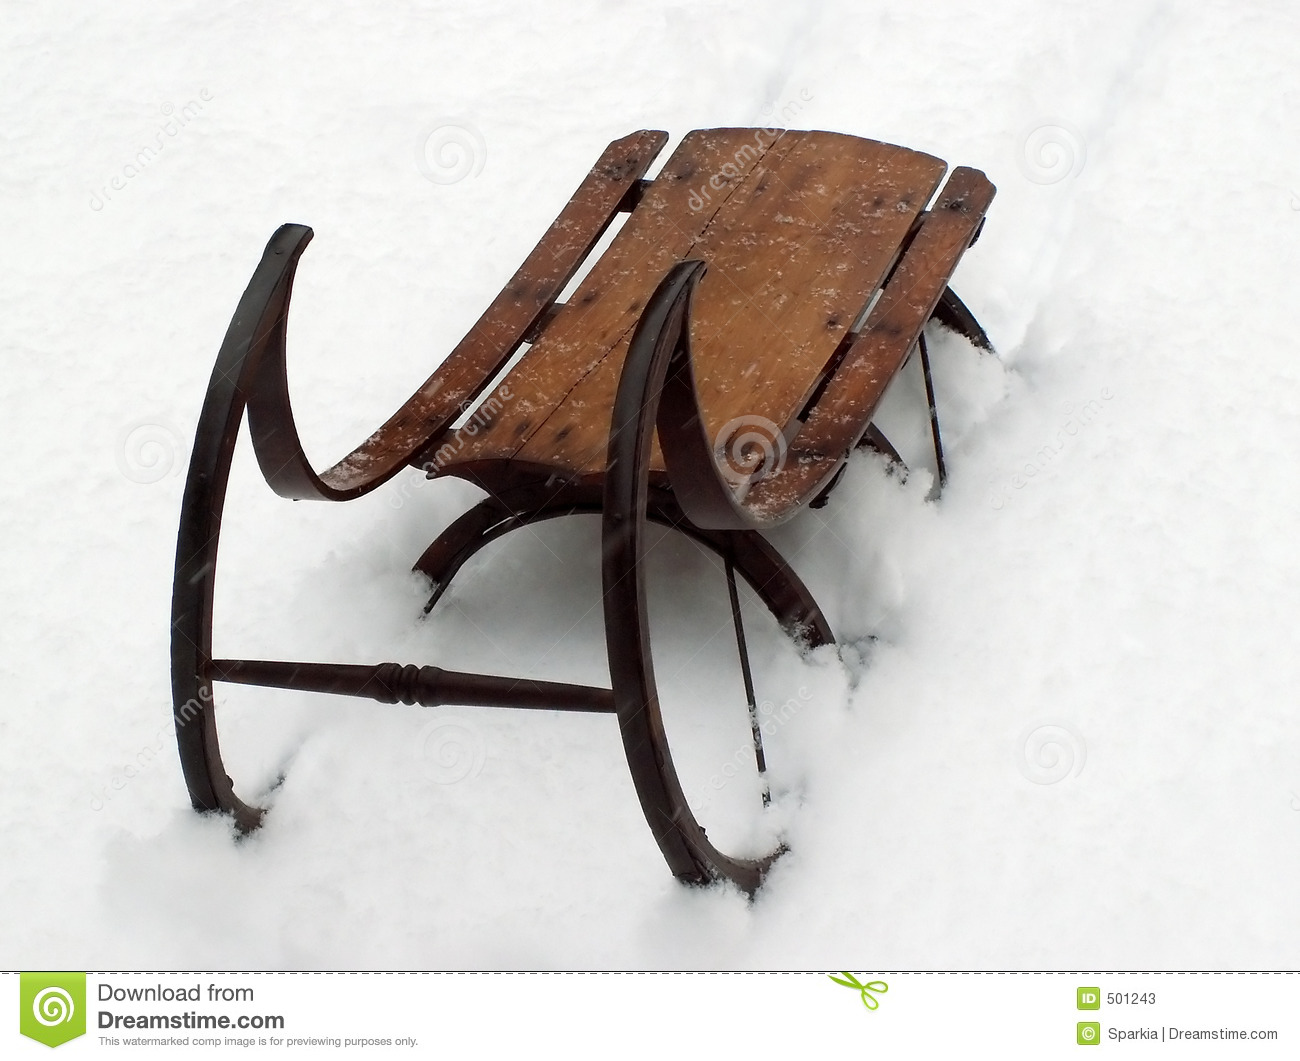 Vintage winter sled stock photos image 501243 for Vintage sleds